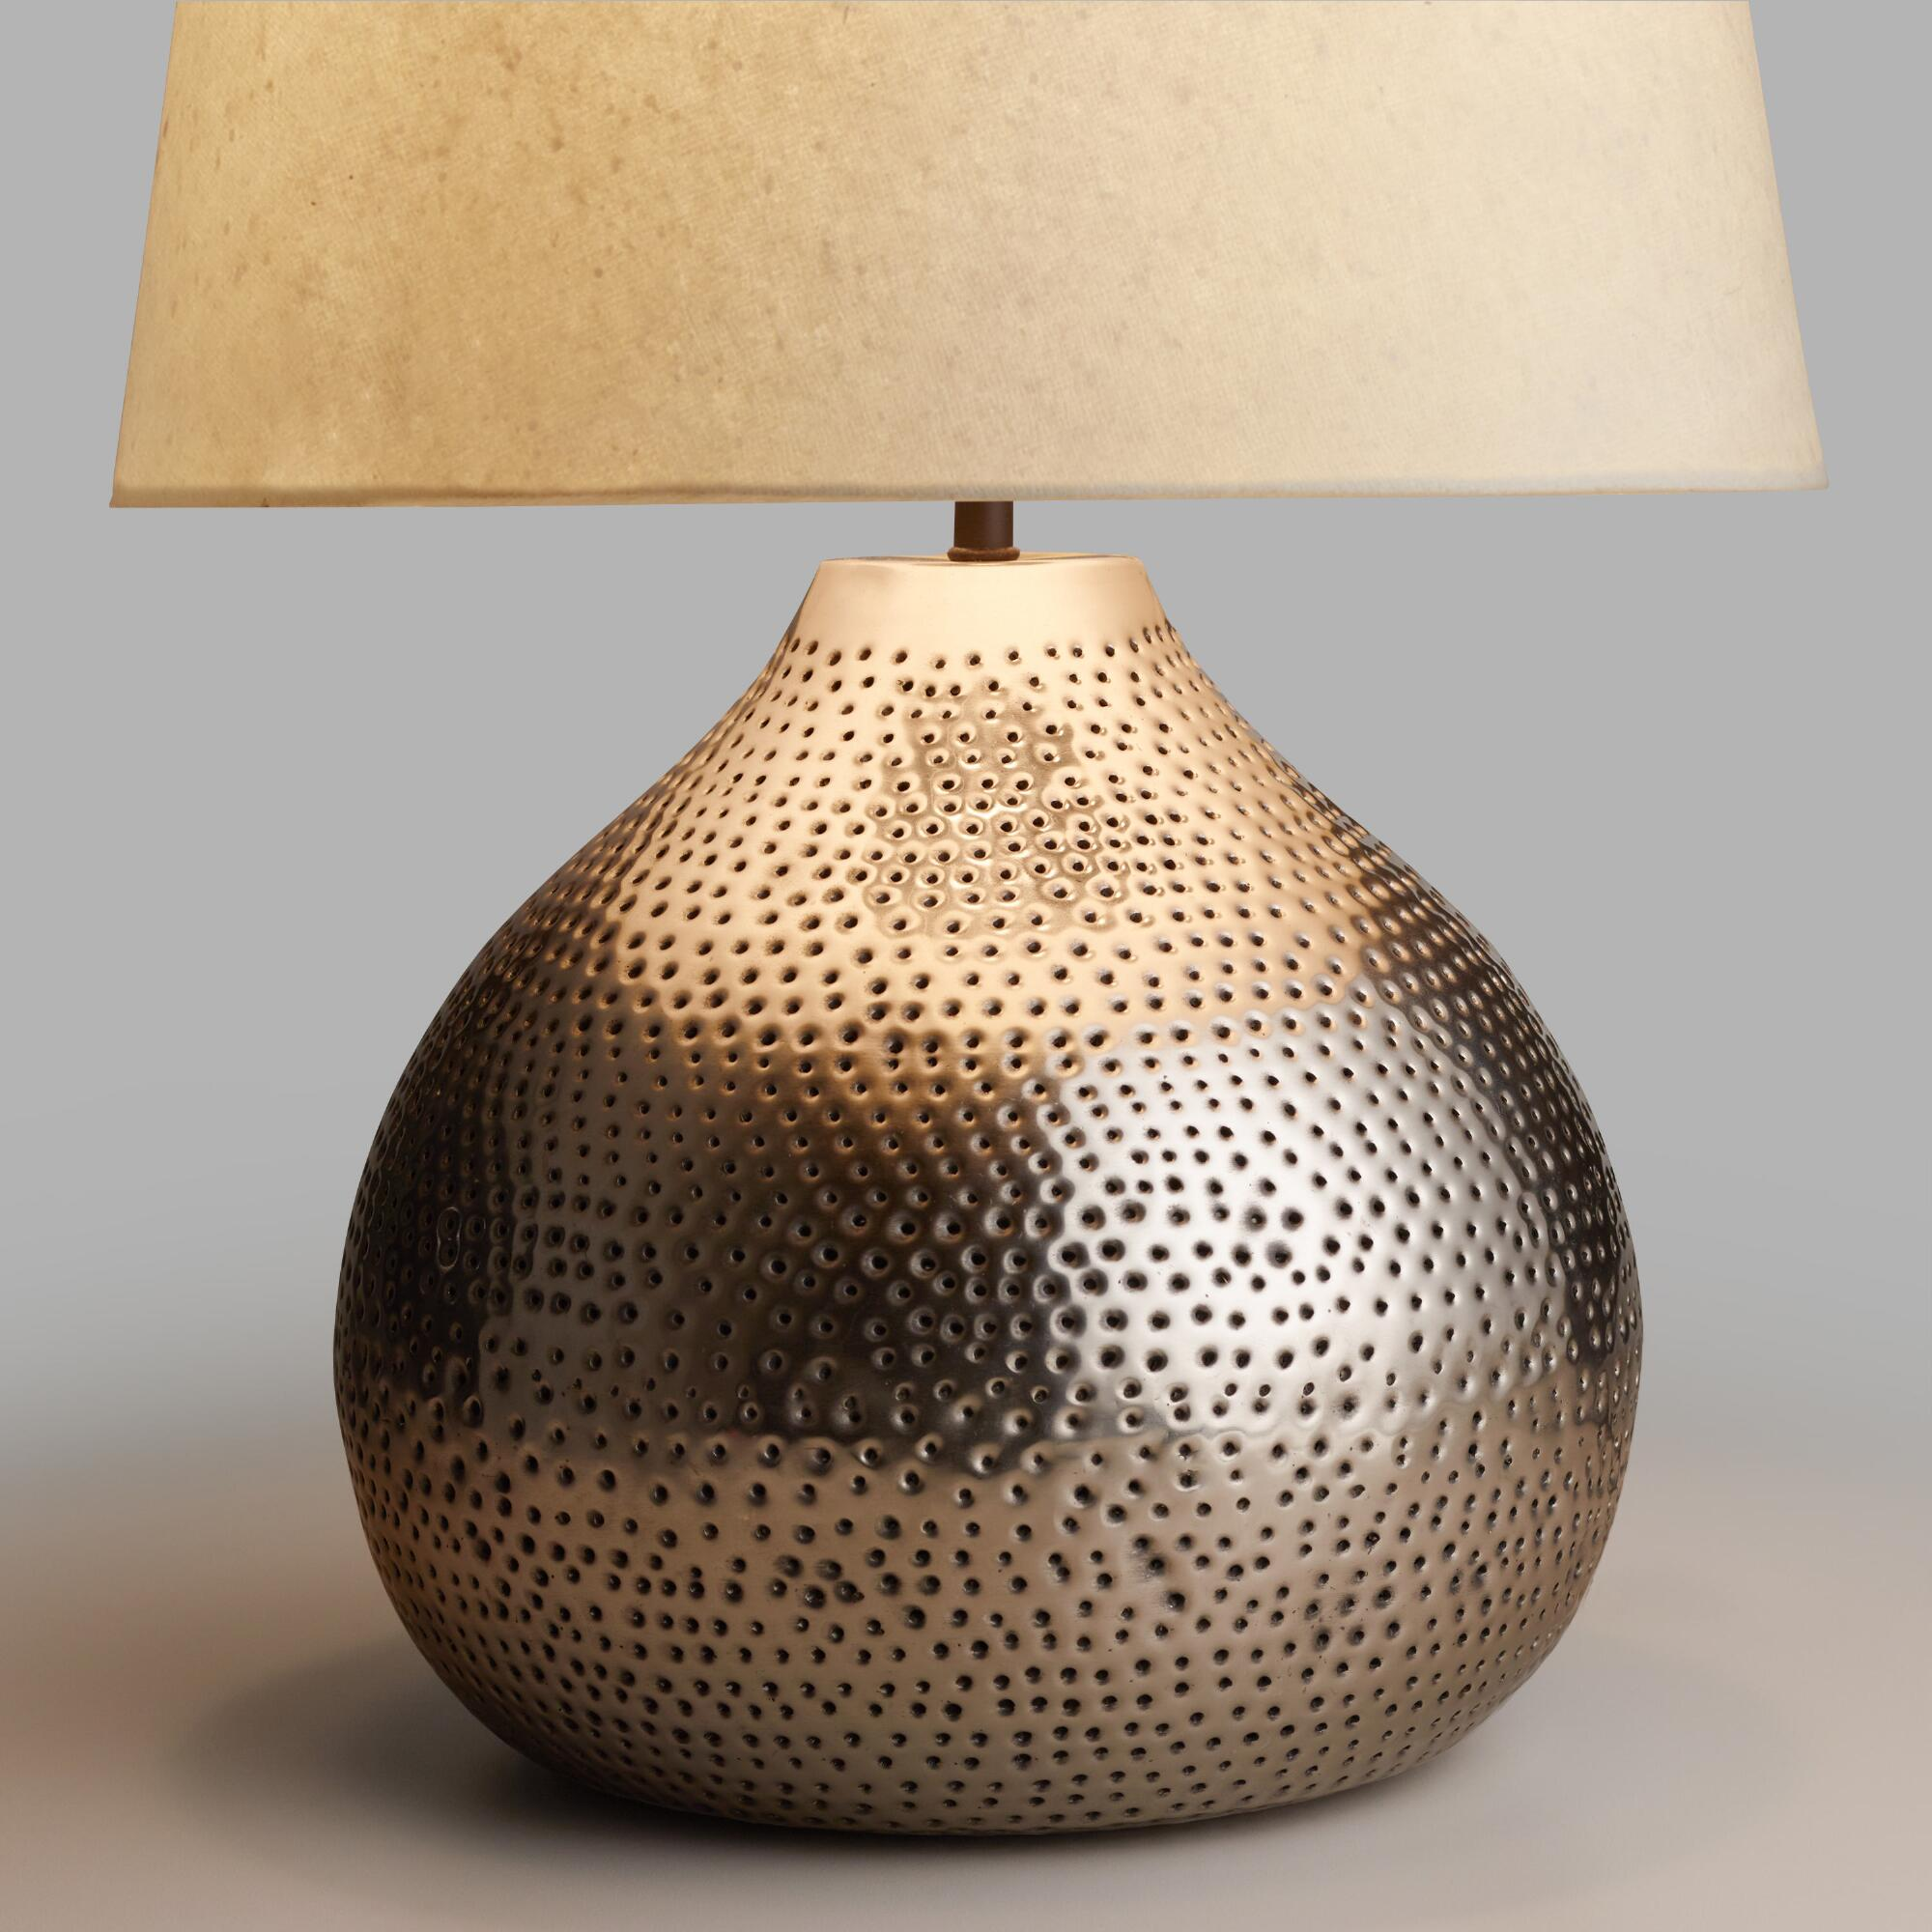 Pewter Prema Punched Metal Table Lamp Base | World Market